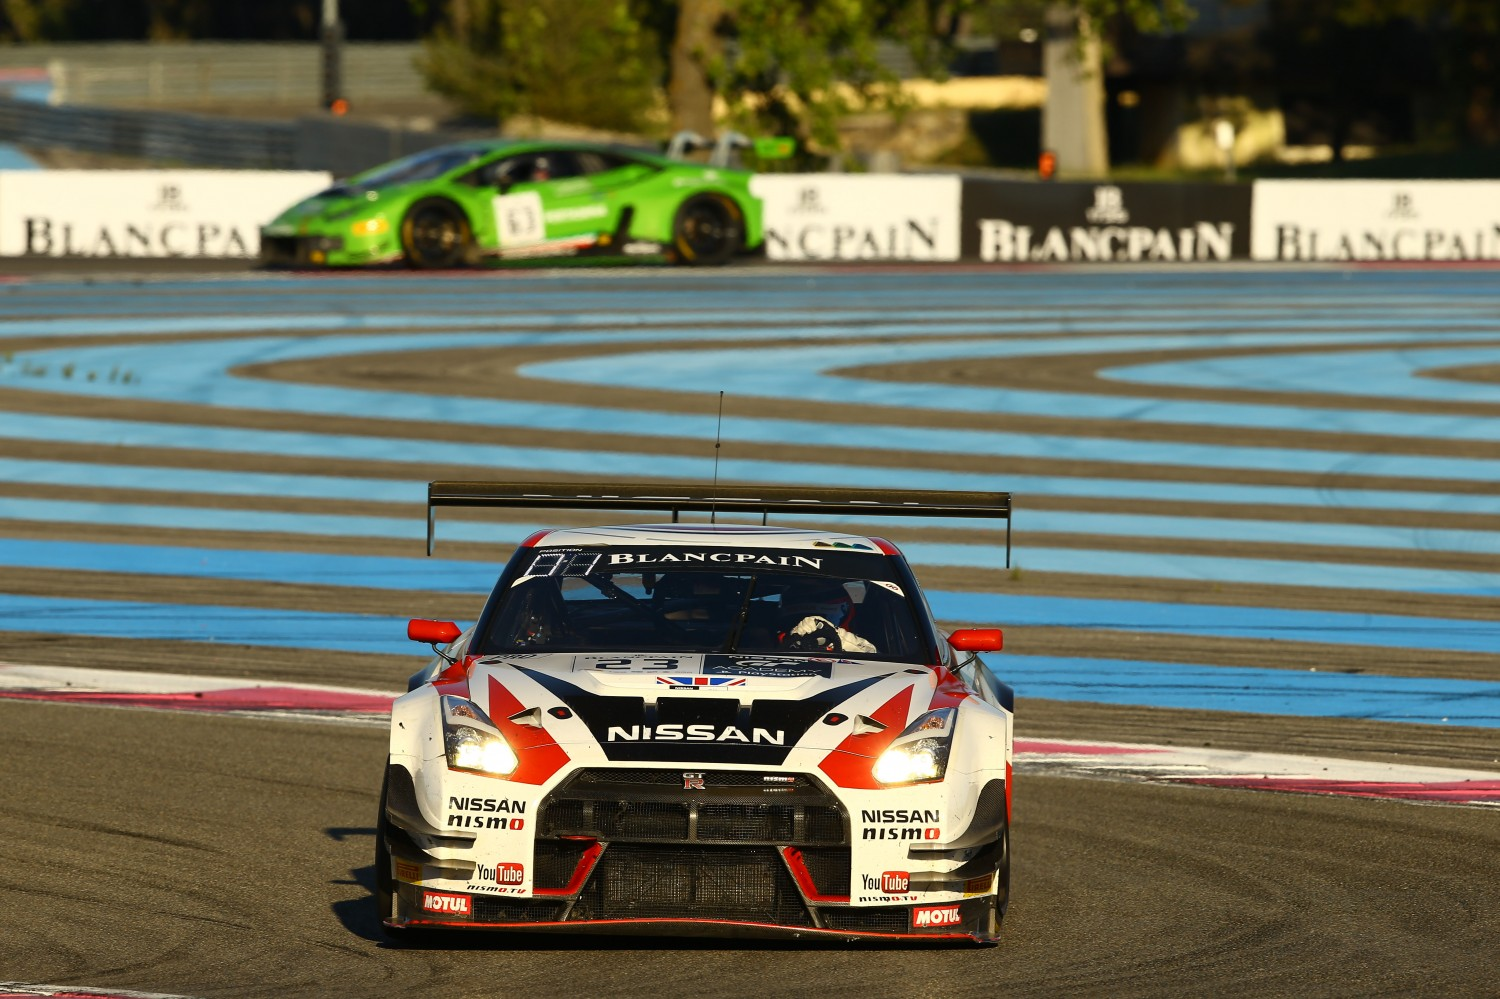 Nissan takes maiden win at Circuit Paul Ricard